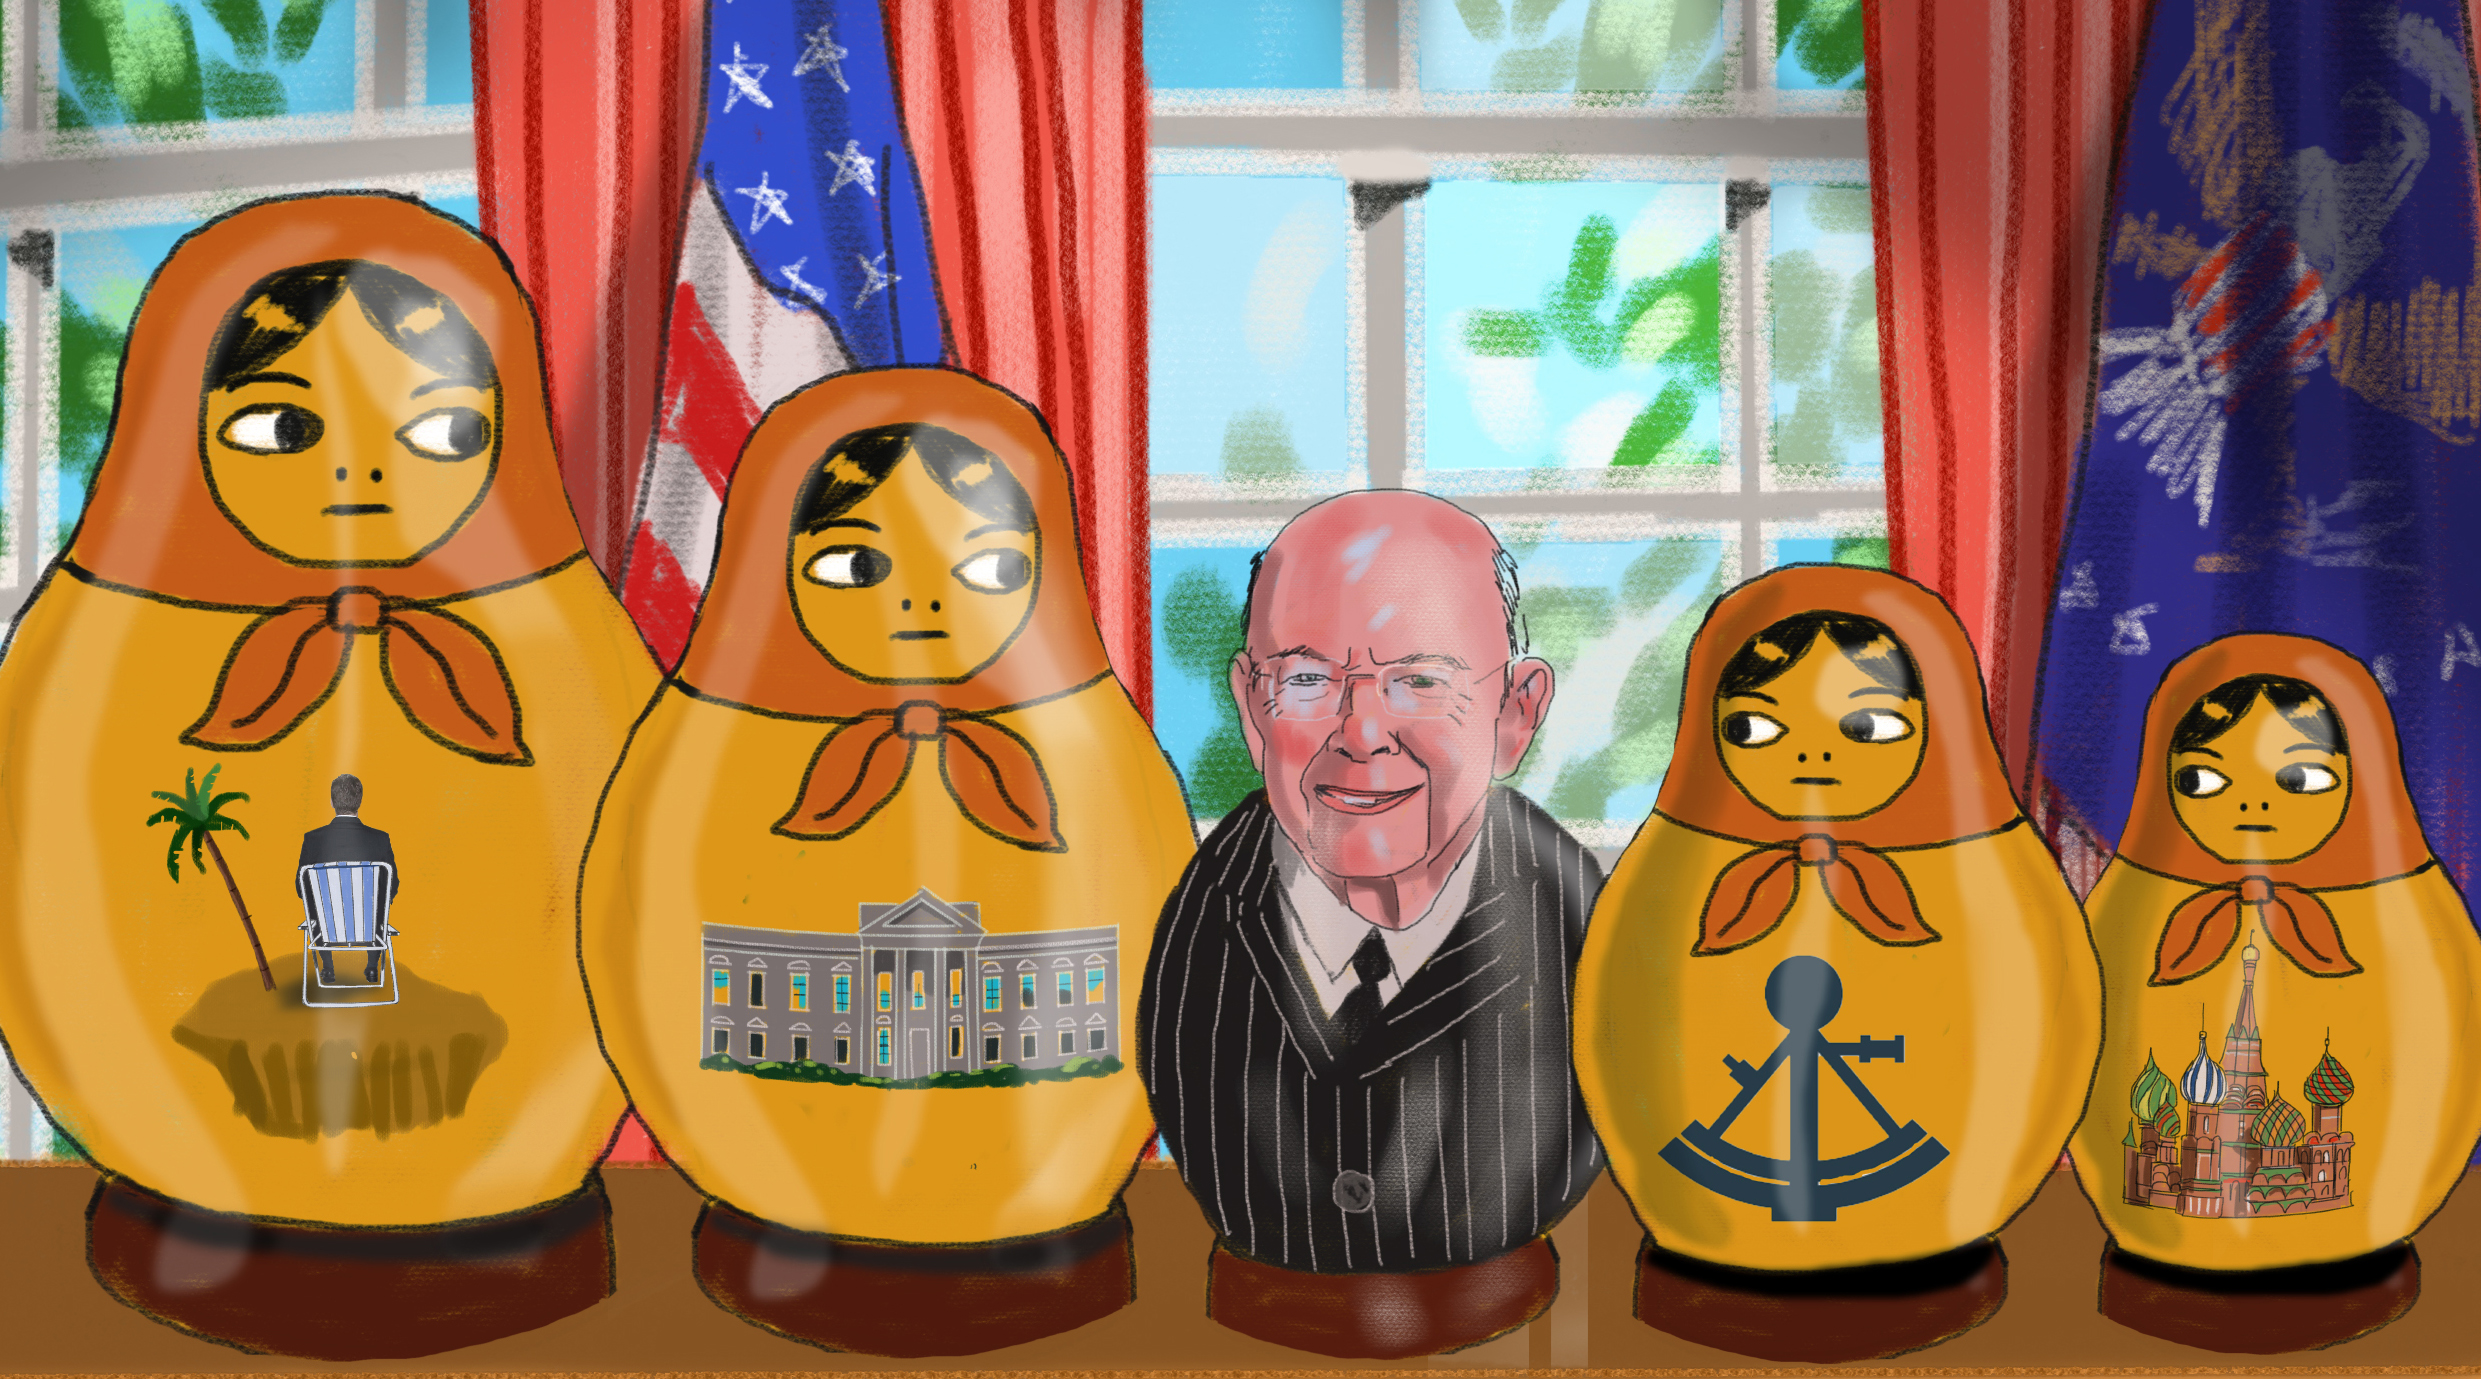 Wilbur Ross was found in the Paradise Papers leak.